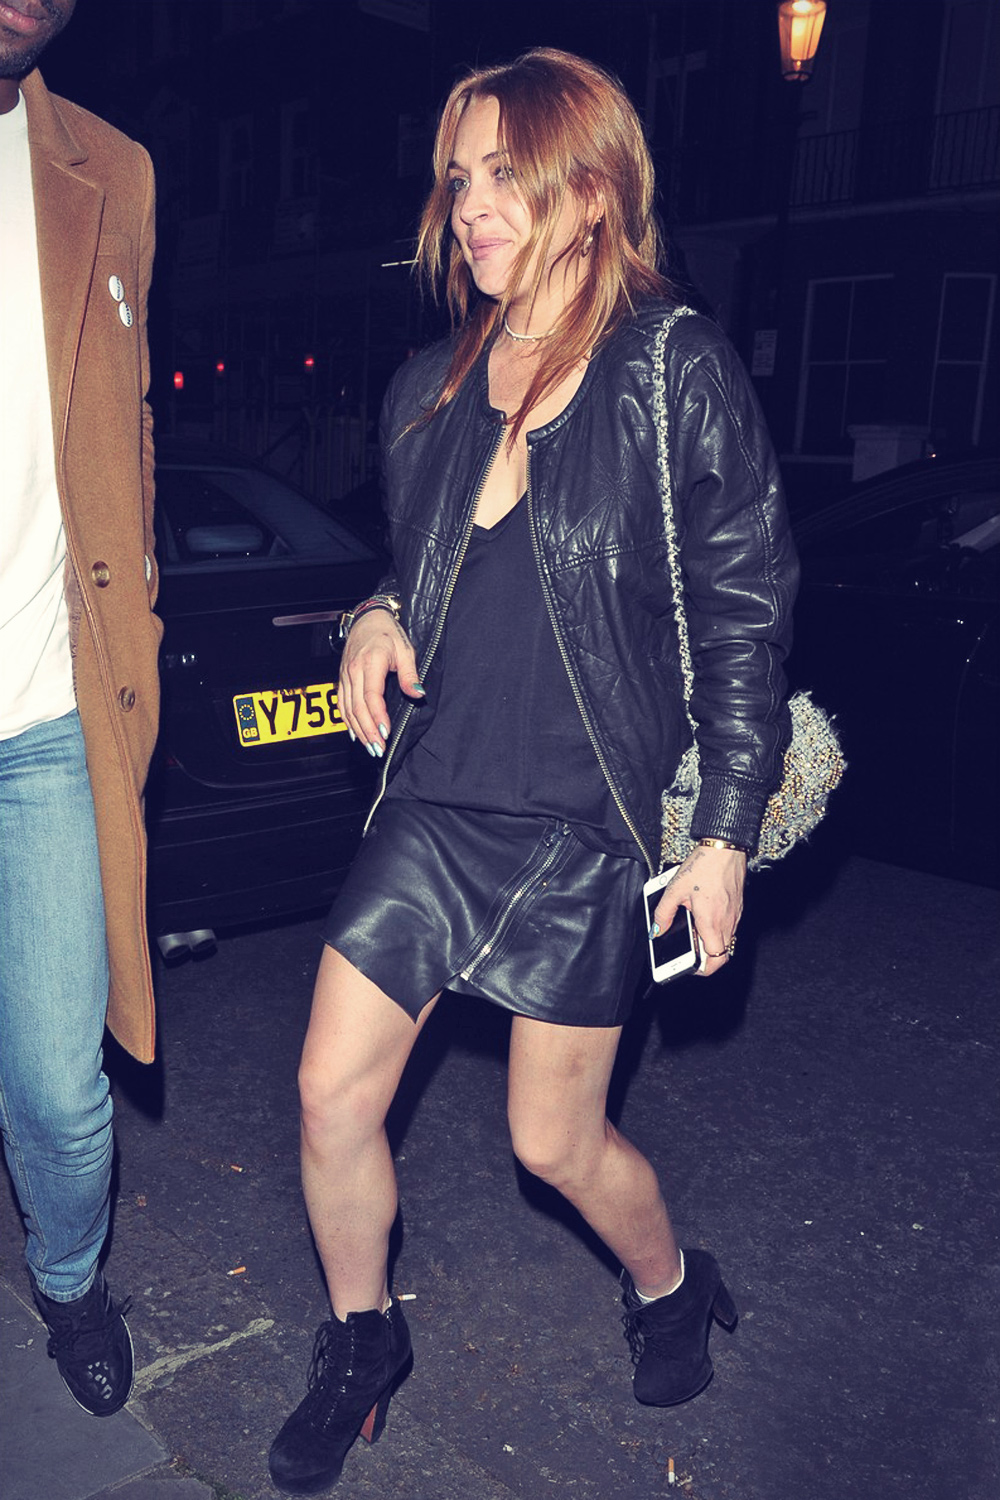 Lindsay Lohan leaves the Chiltern Firehouse